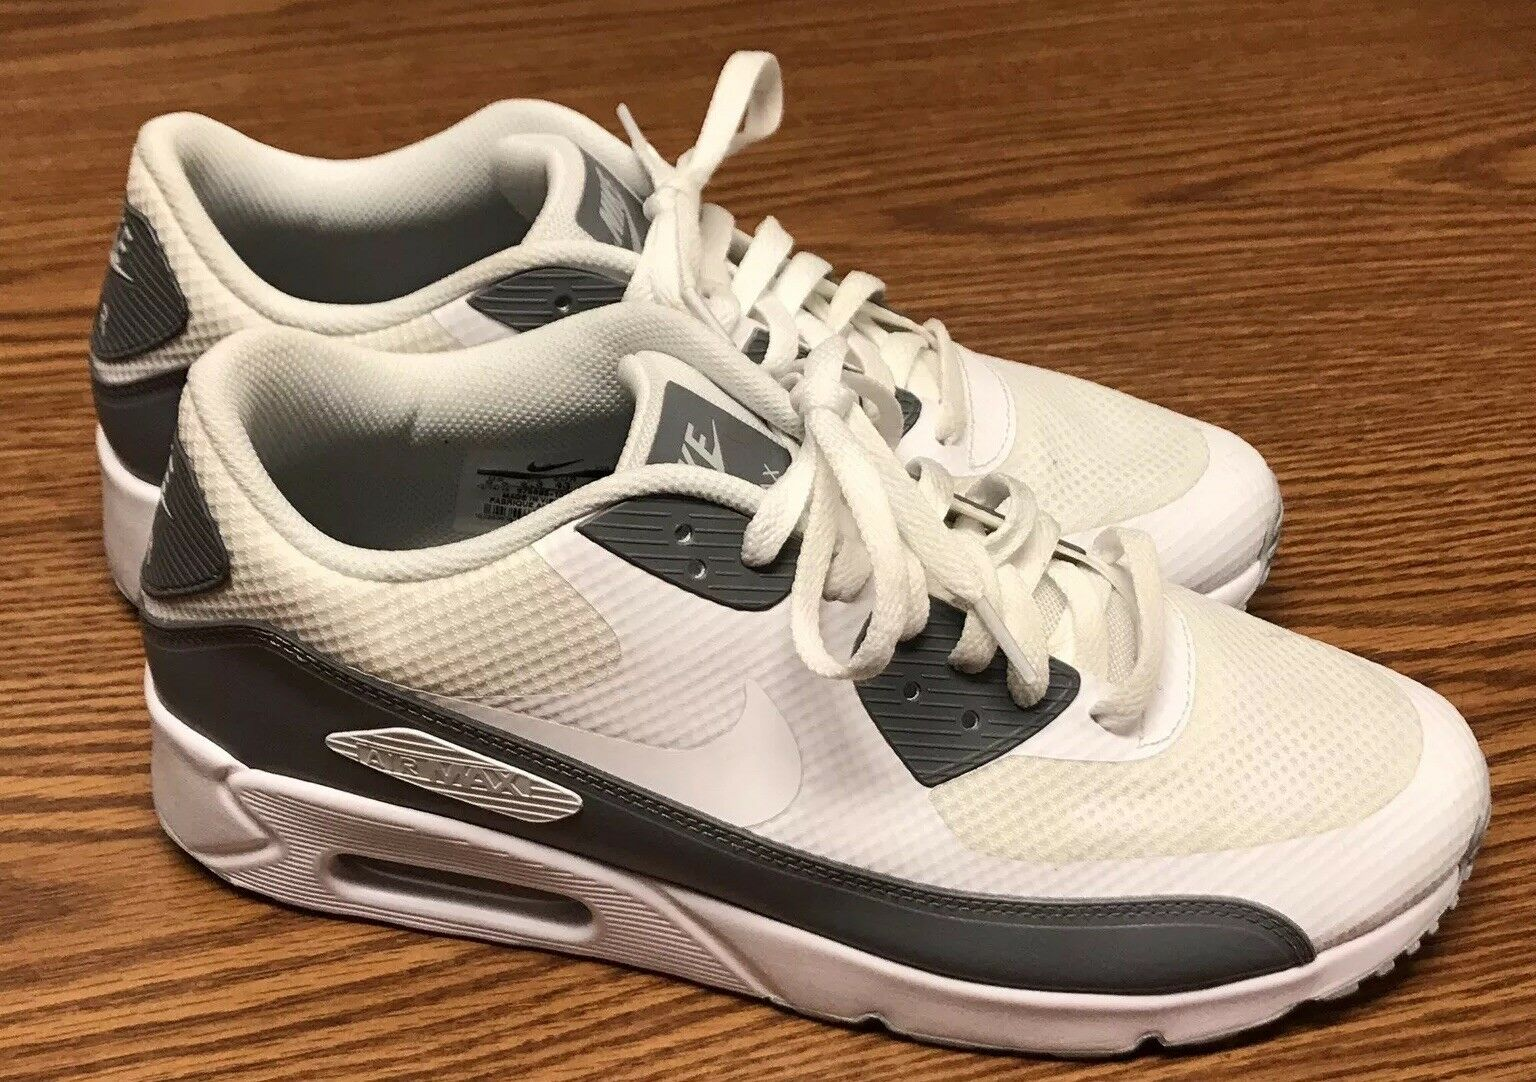 939f6a21a6 Nike 875695-102 Air Max 90 Ultra 2.0 Essential Essential Essential White  Gray Athletic Shoe